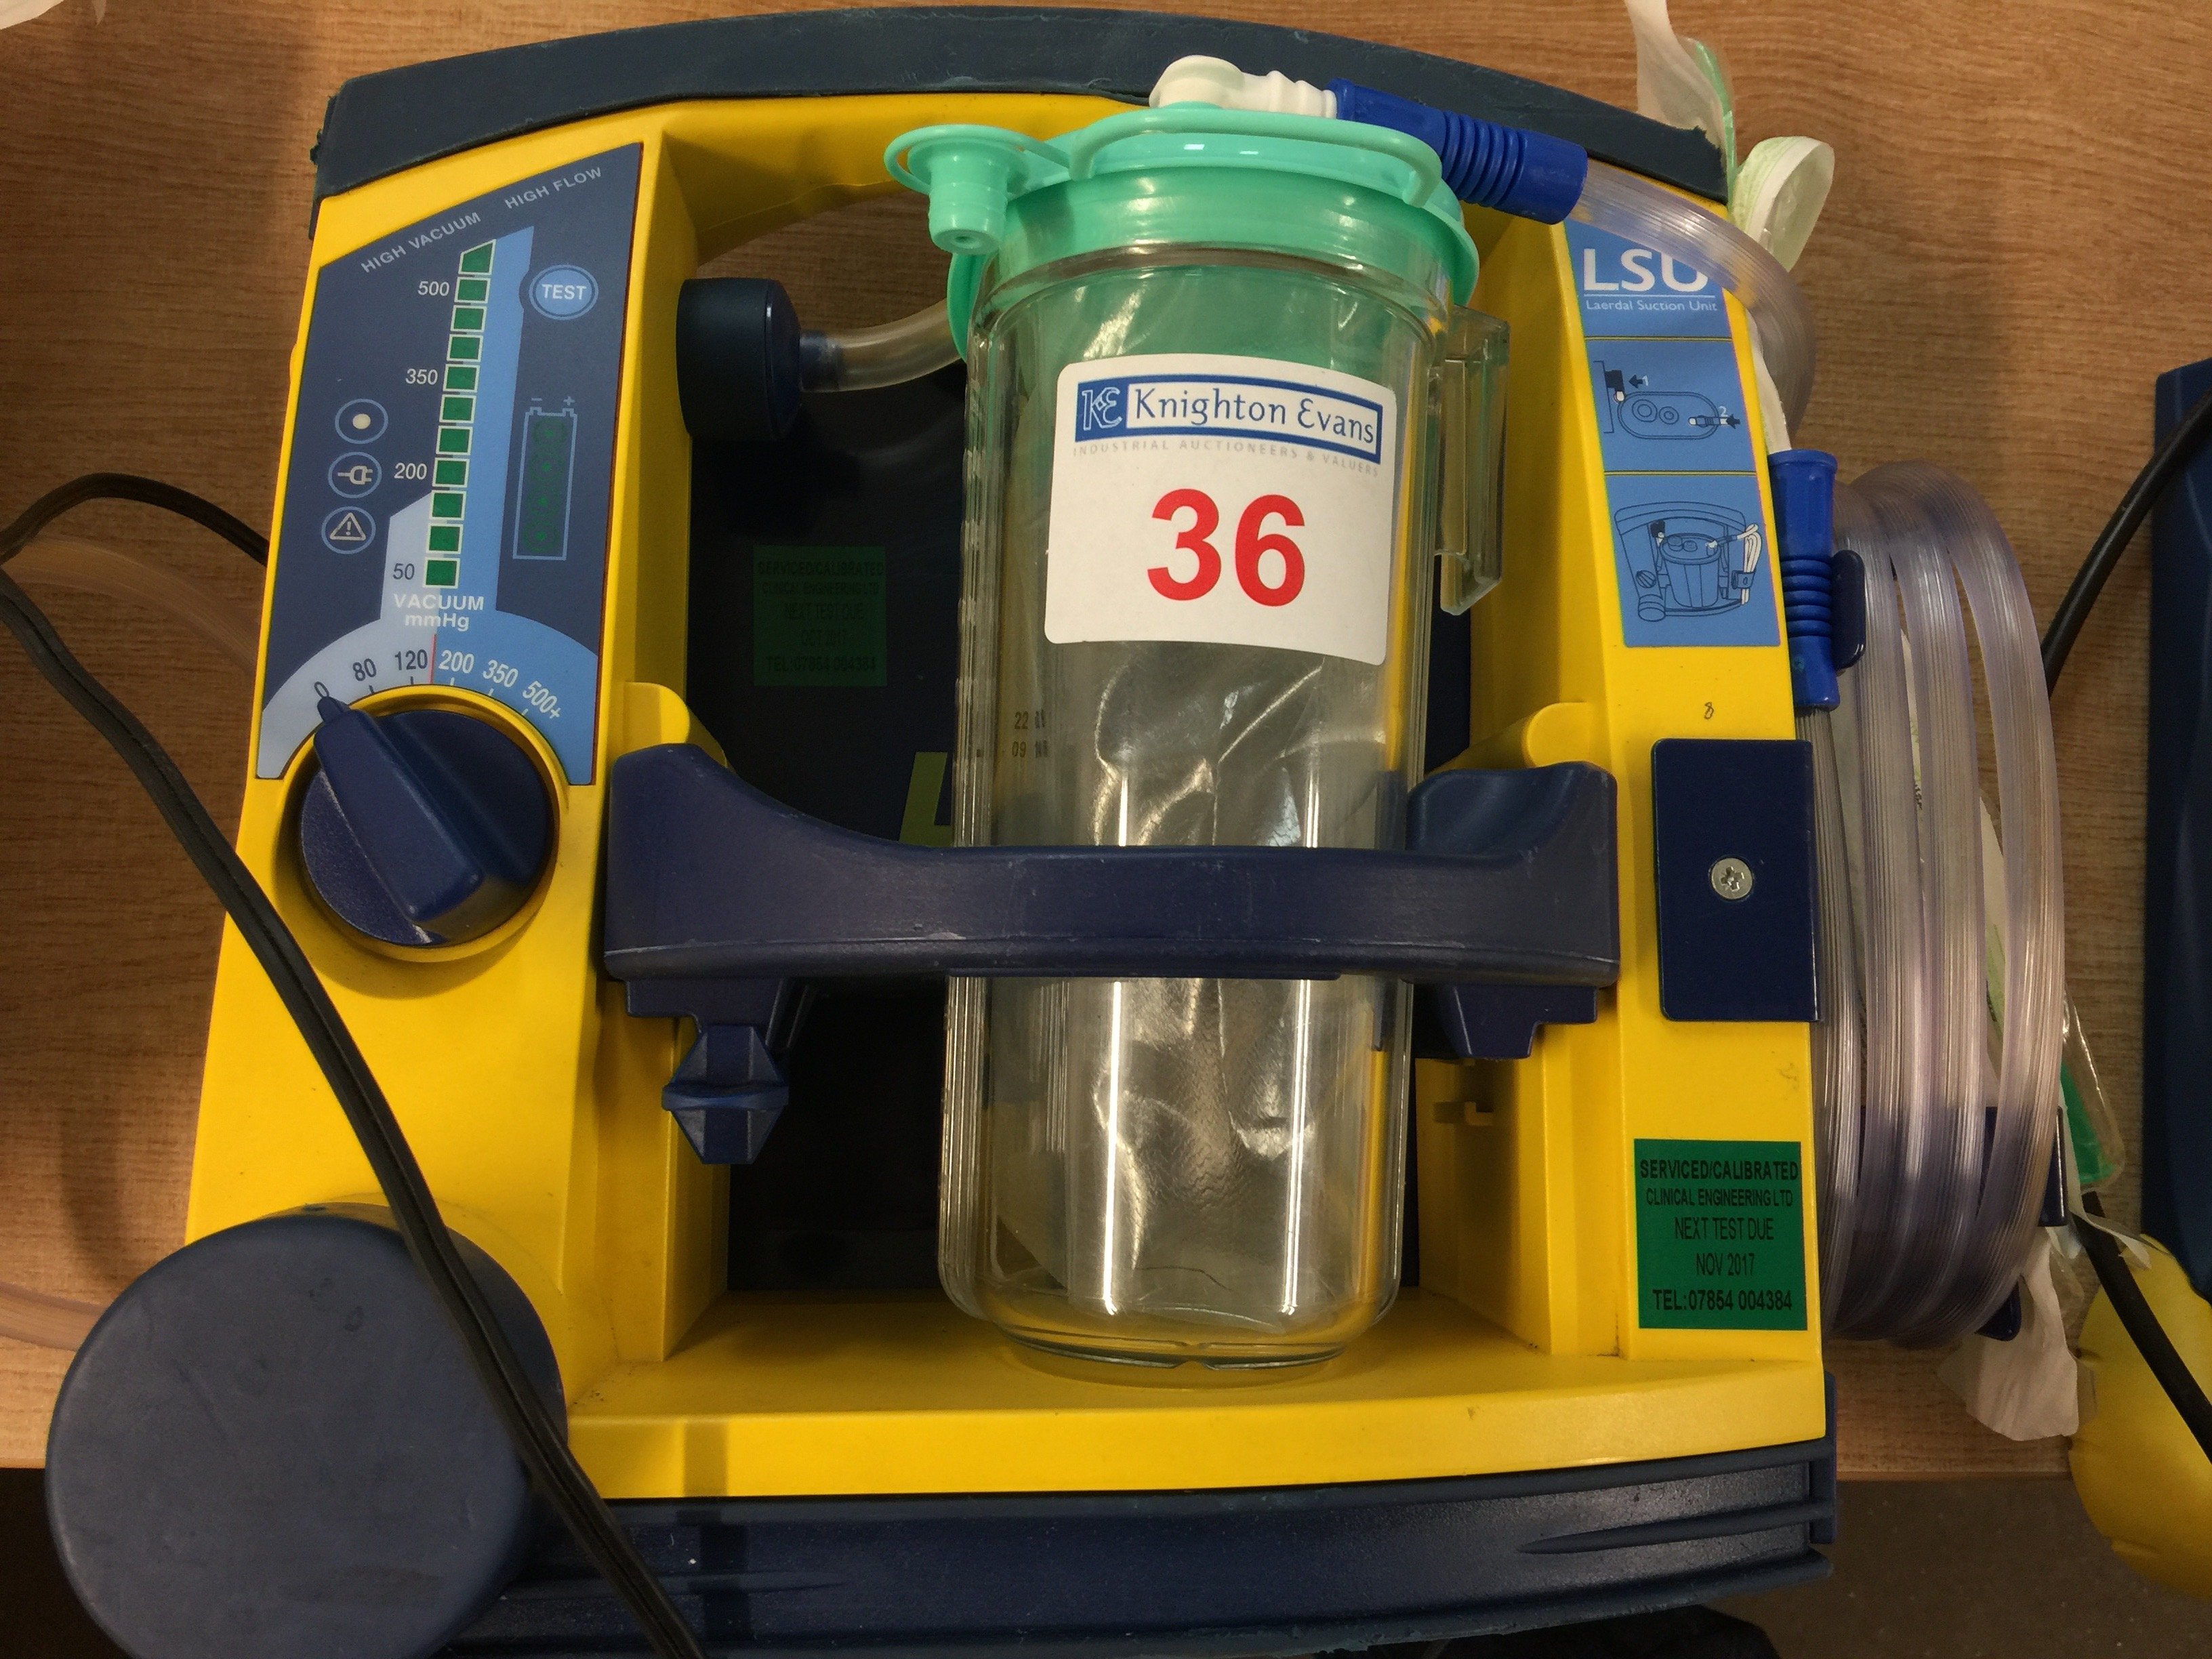 Lot 36 - Laerdal LSU portable suction unit with mounting plate and 12v charger, test due November 2017